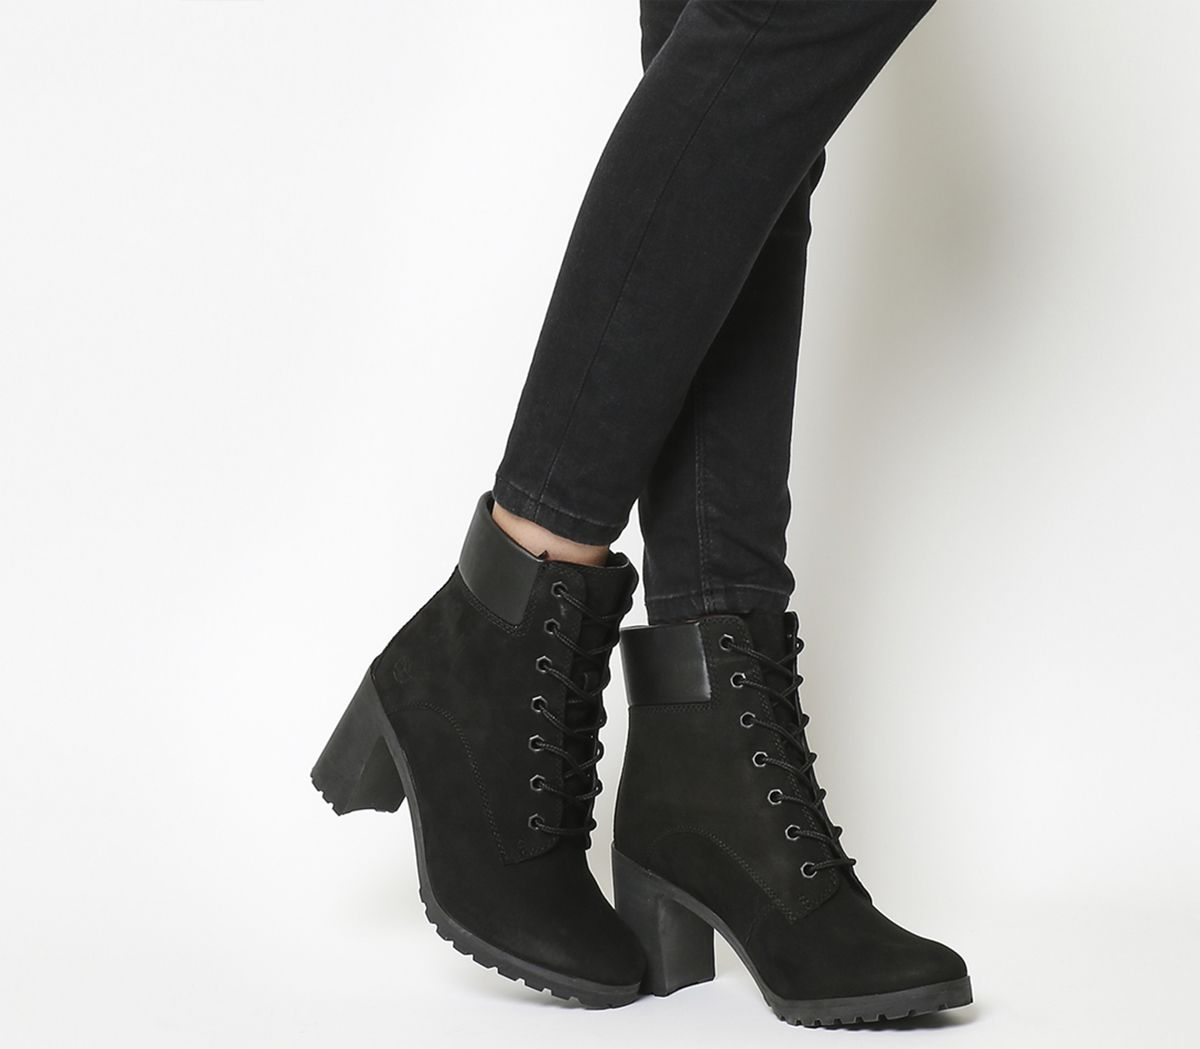 b6e9abd7047 Timberland Allington 6 Inch Lace Boots Black - Ankle Boots